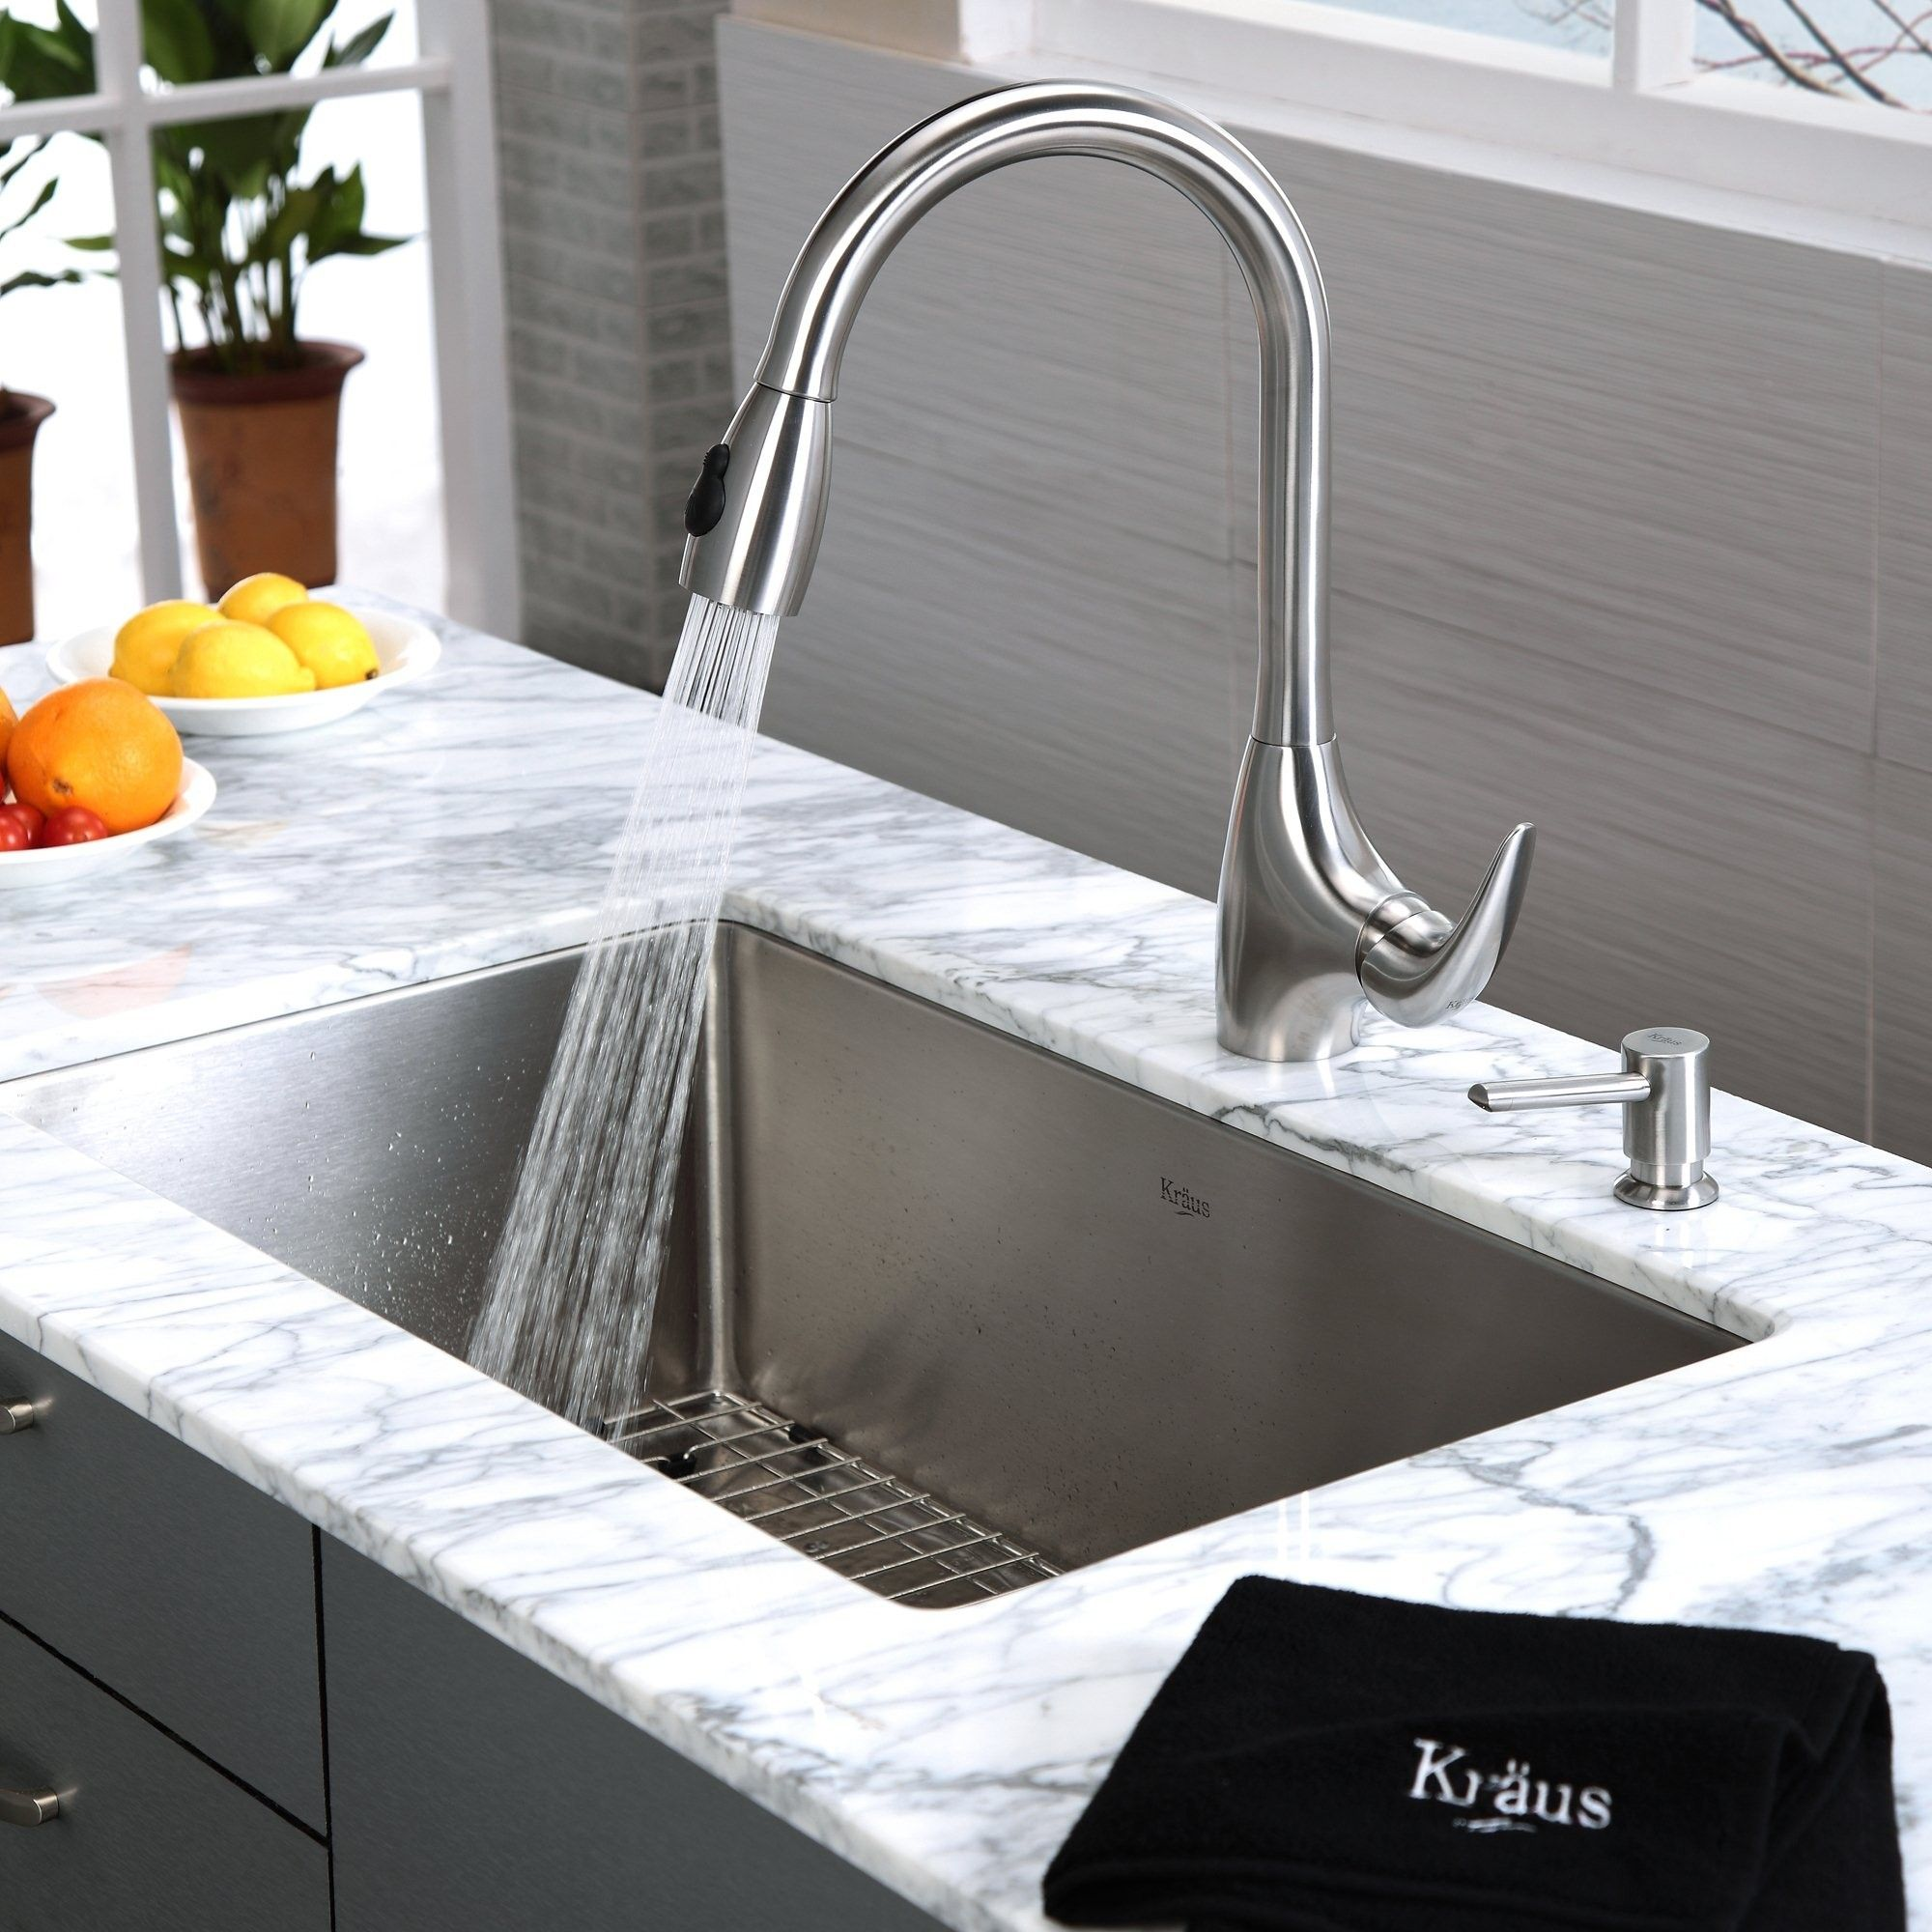 sink stainless adds campo collection sinks news to rohl luxury steel award winning black rgb kitchen